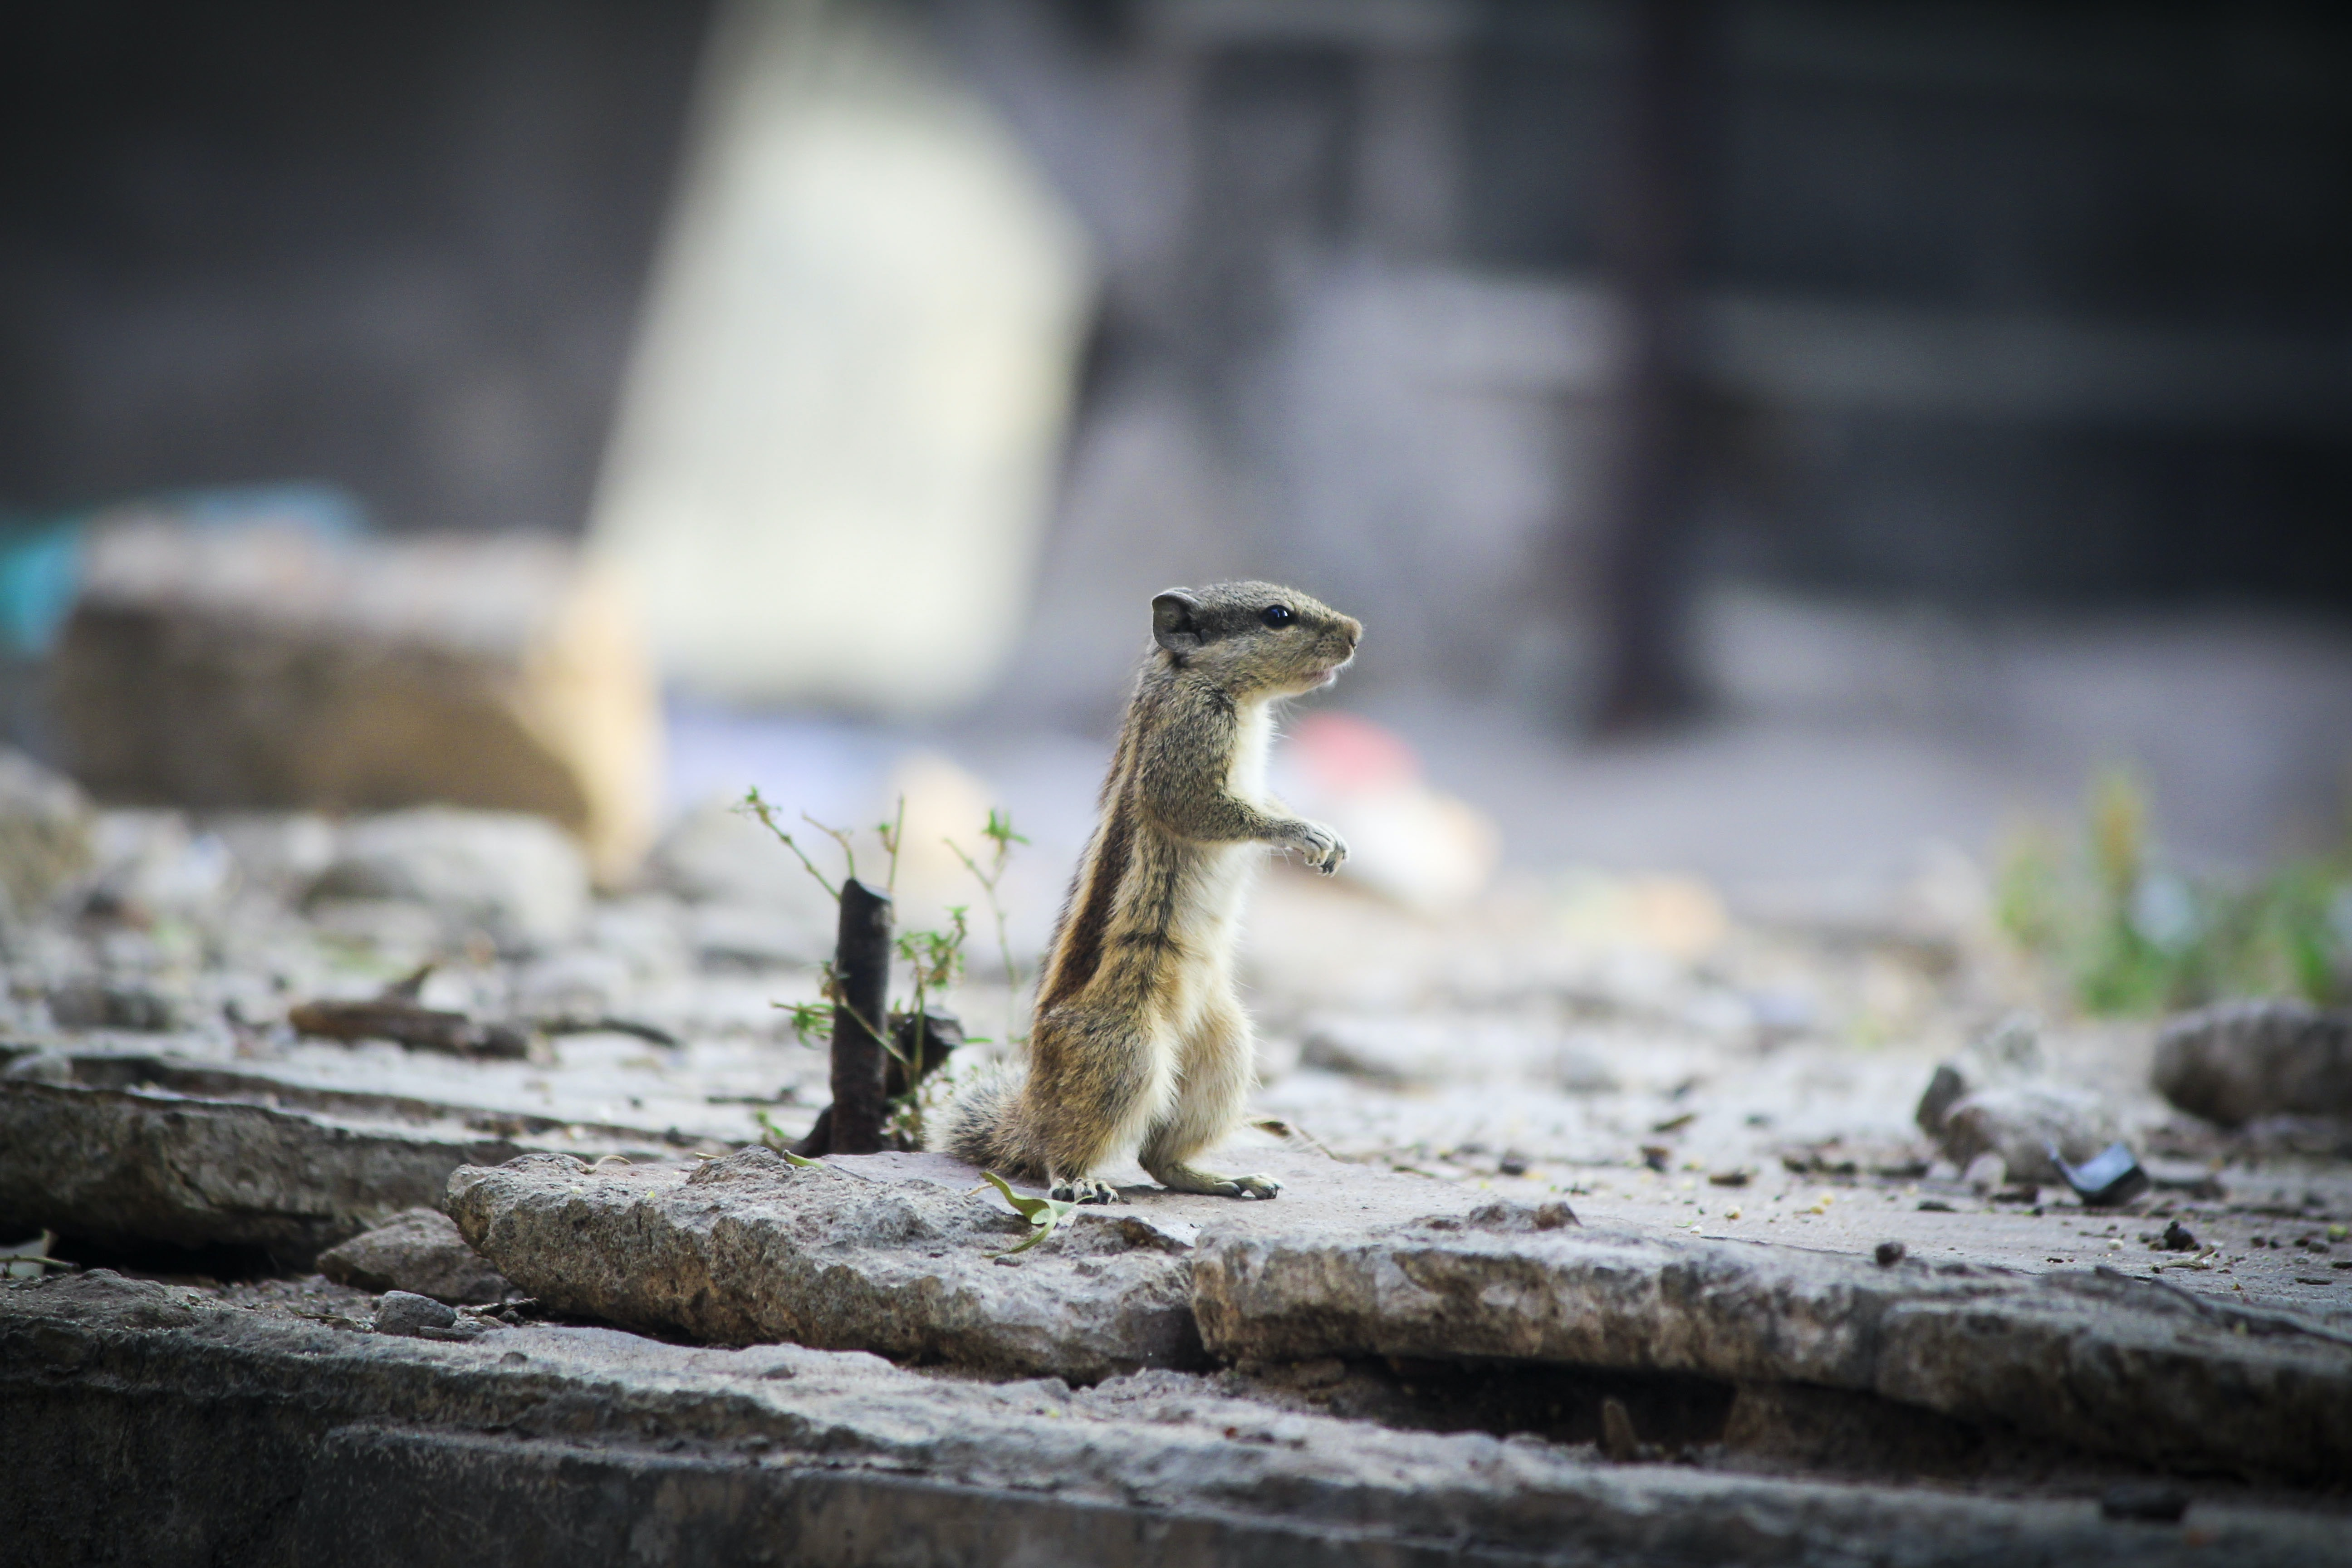 standing squirrel beside green plant during daytime